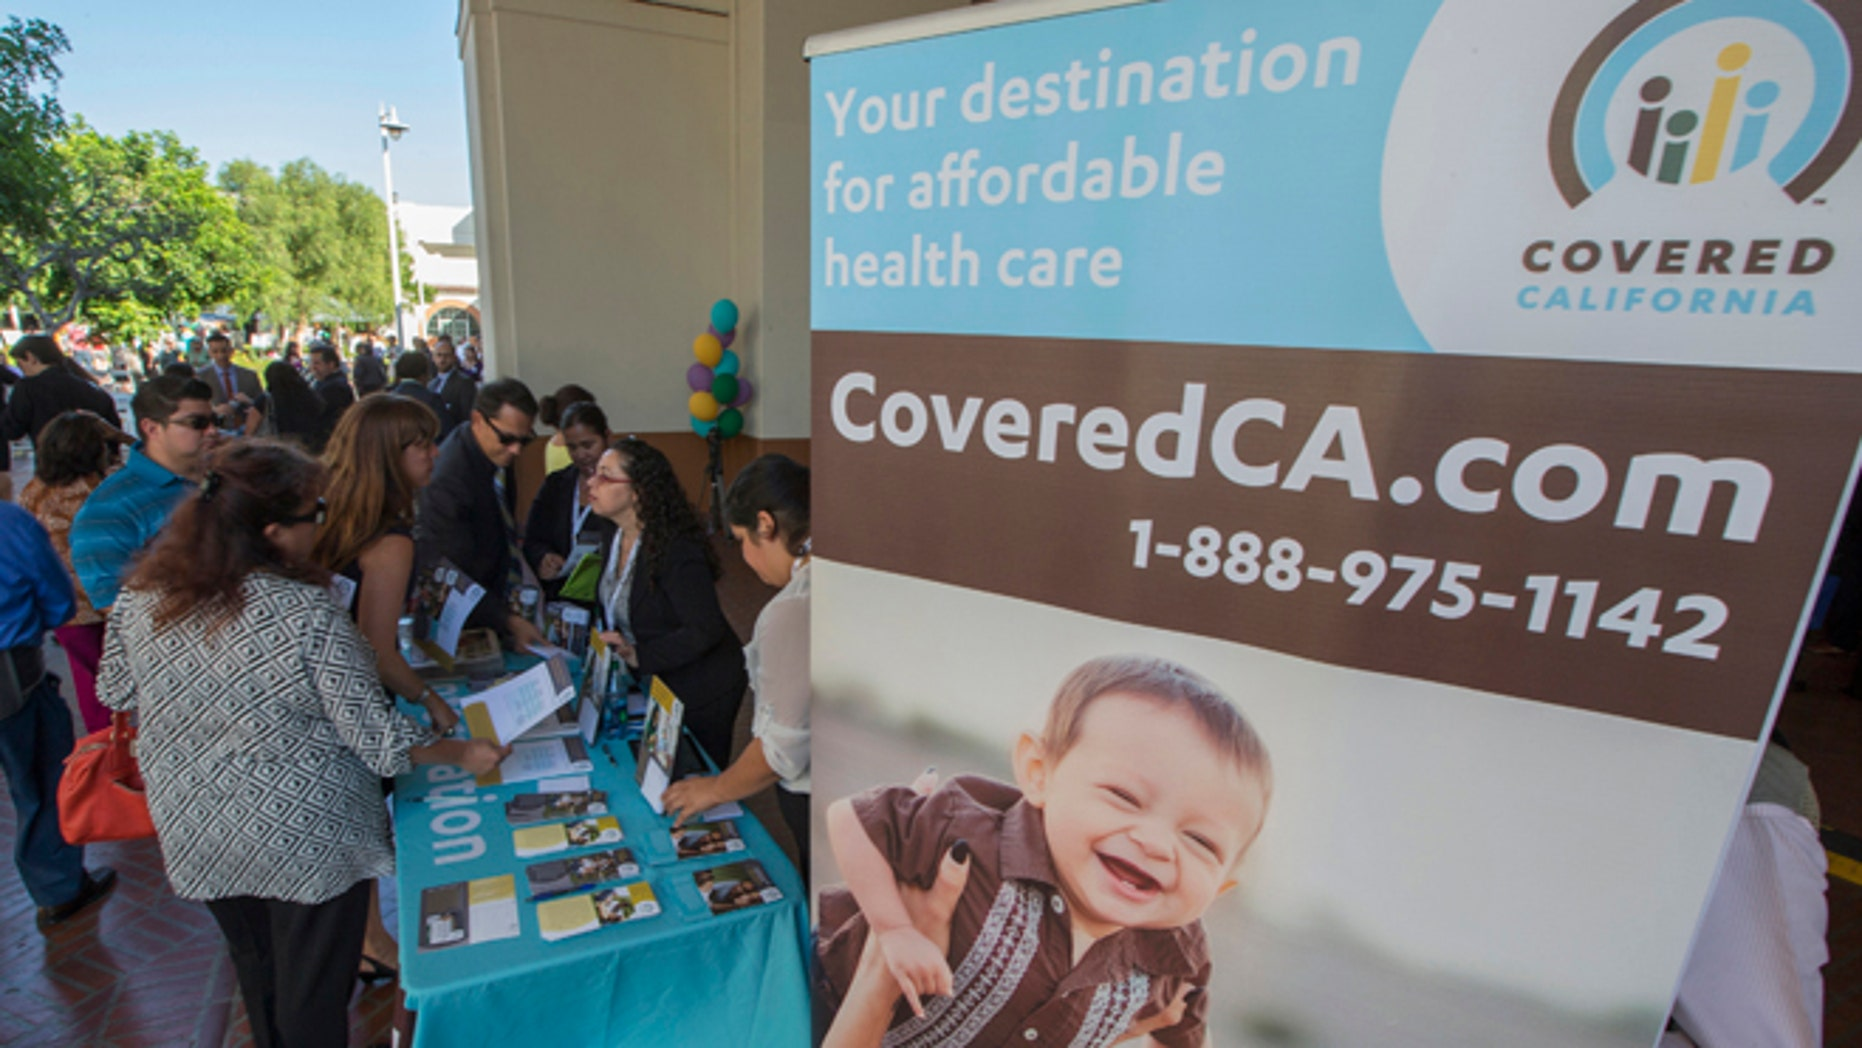 Oct. 1, 2013: People sign up for health insurance information at a Covered California event which marks the opening of the state's Affordable Healthcare Act, commonly known as Obamacare.